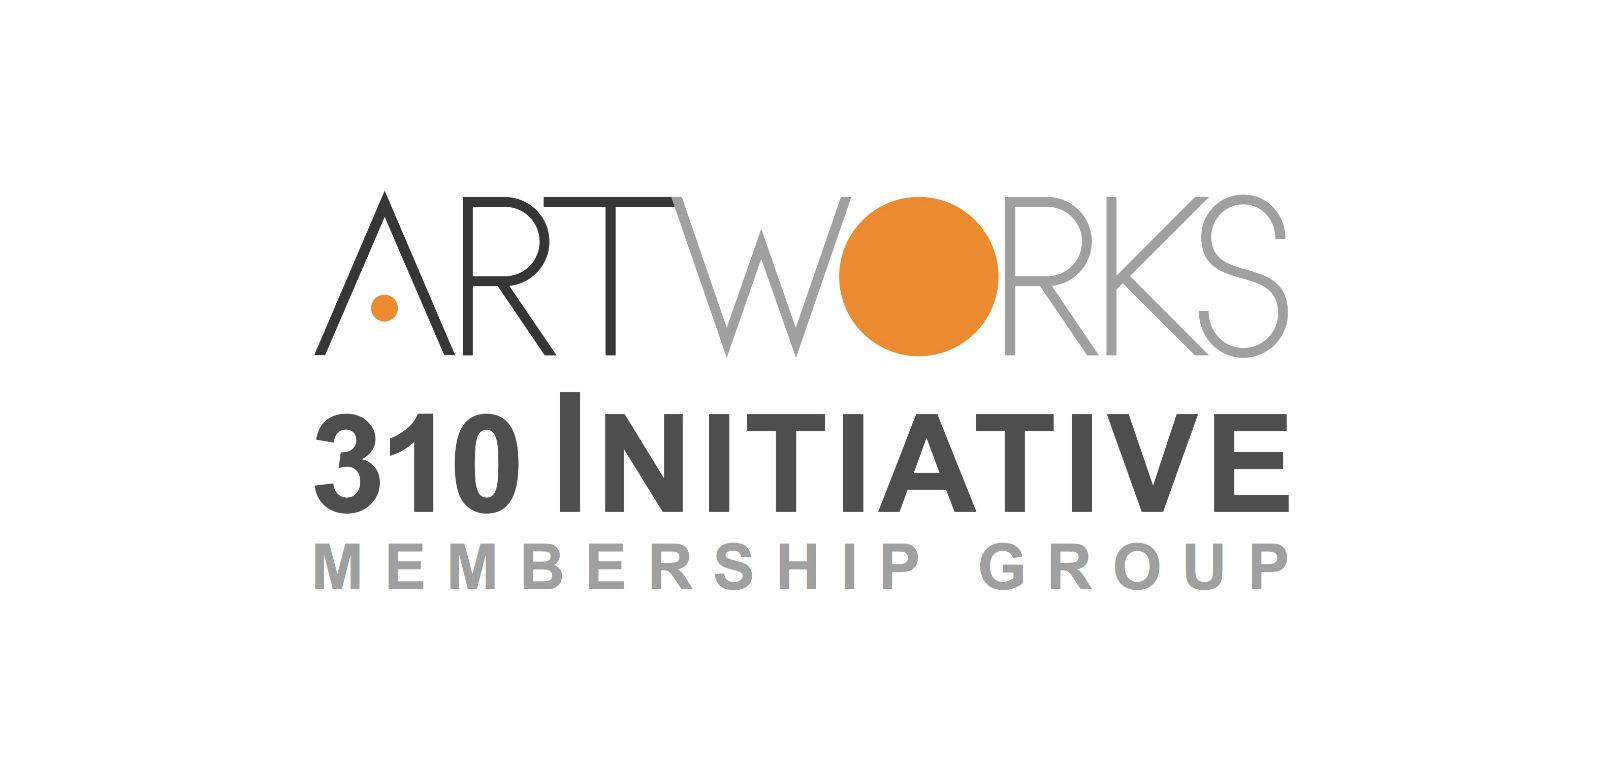 310 INITIATIVE membership group